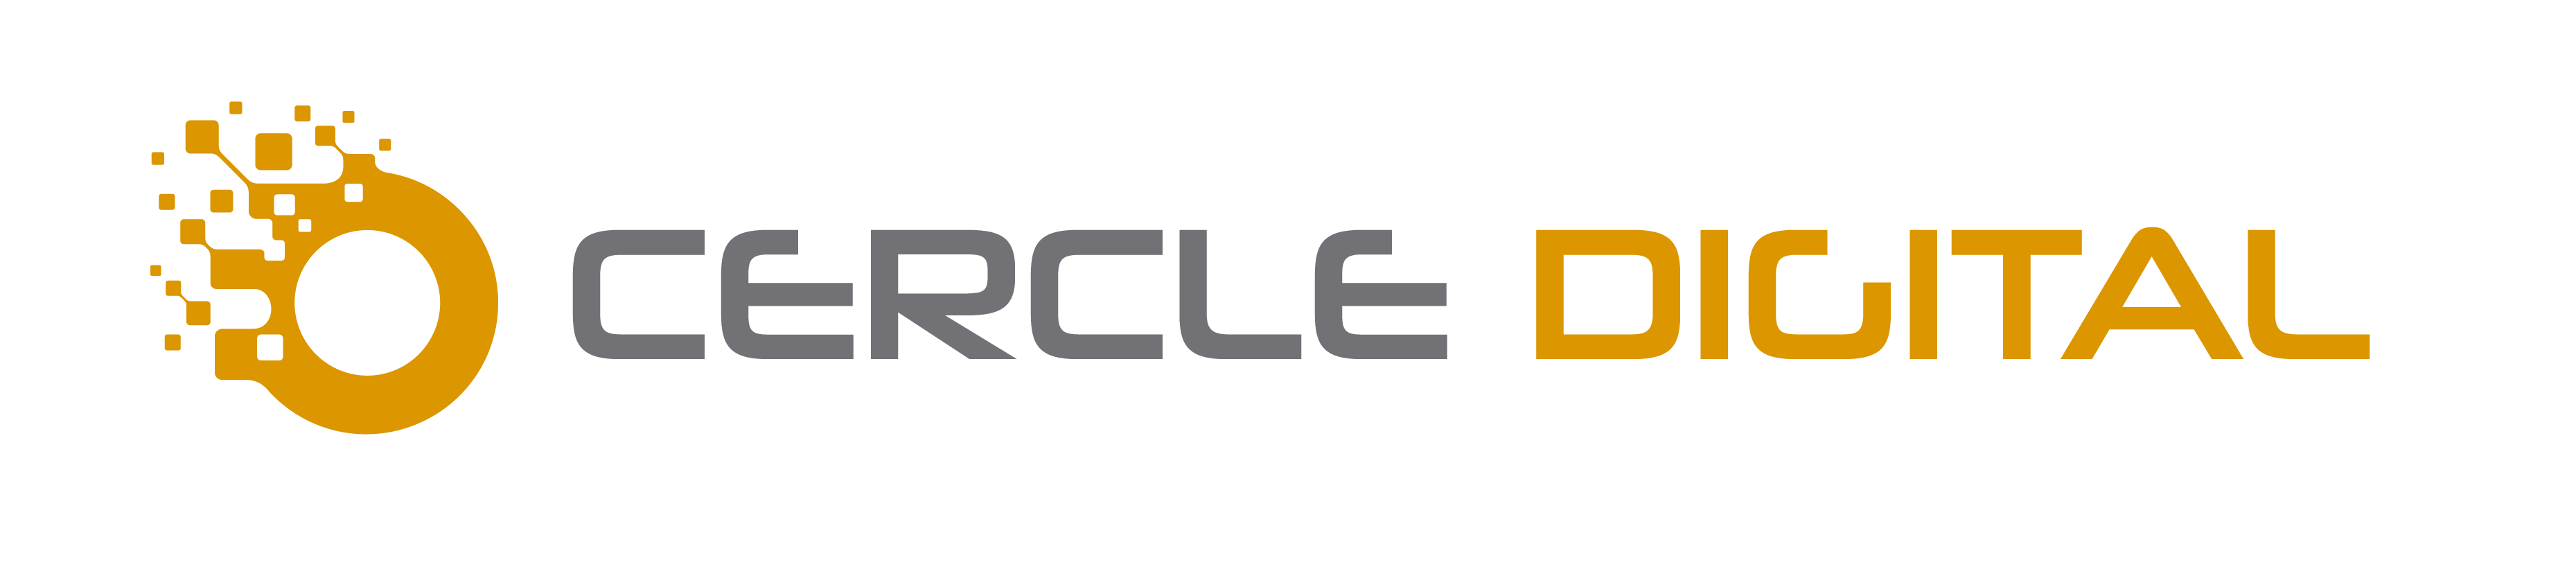 Cercle Digital – Tu agencia de desarrollo web y marketing en Lleida